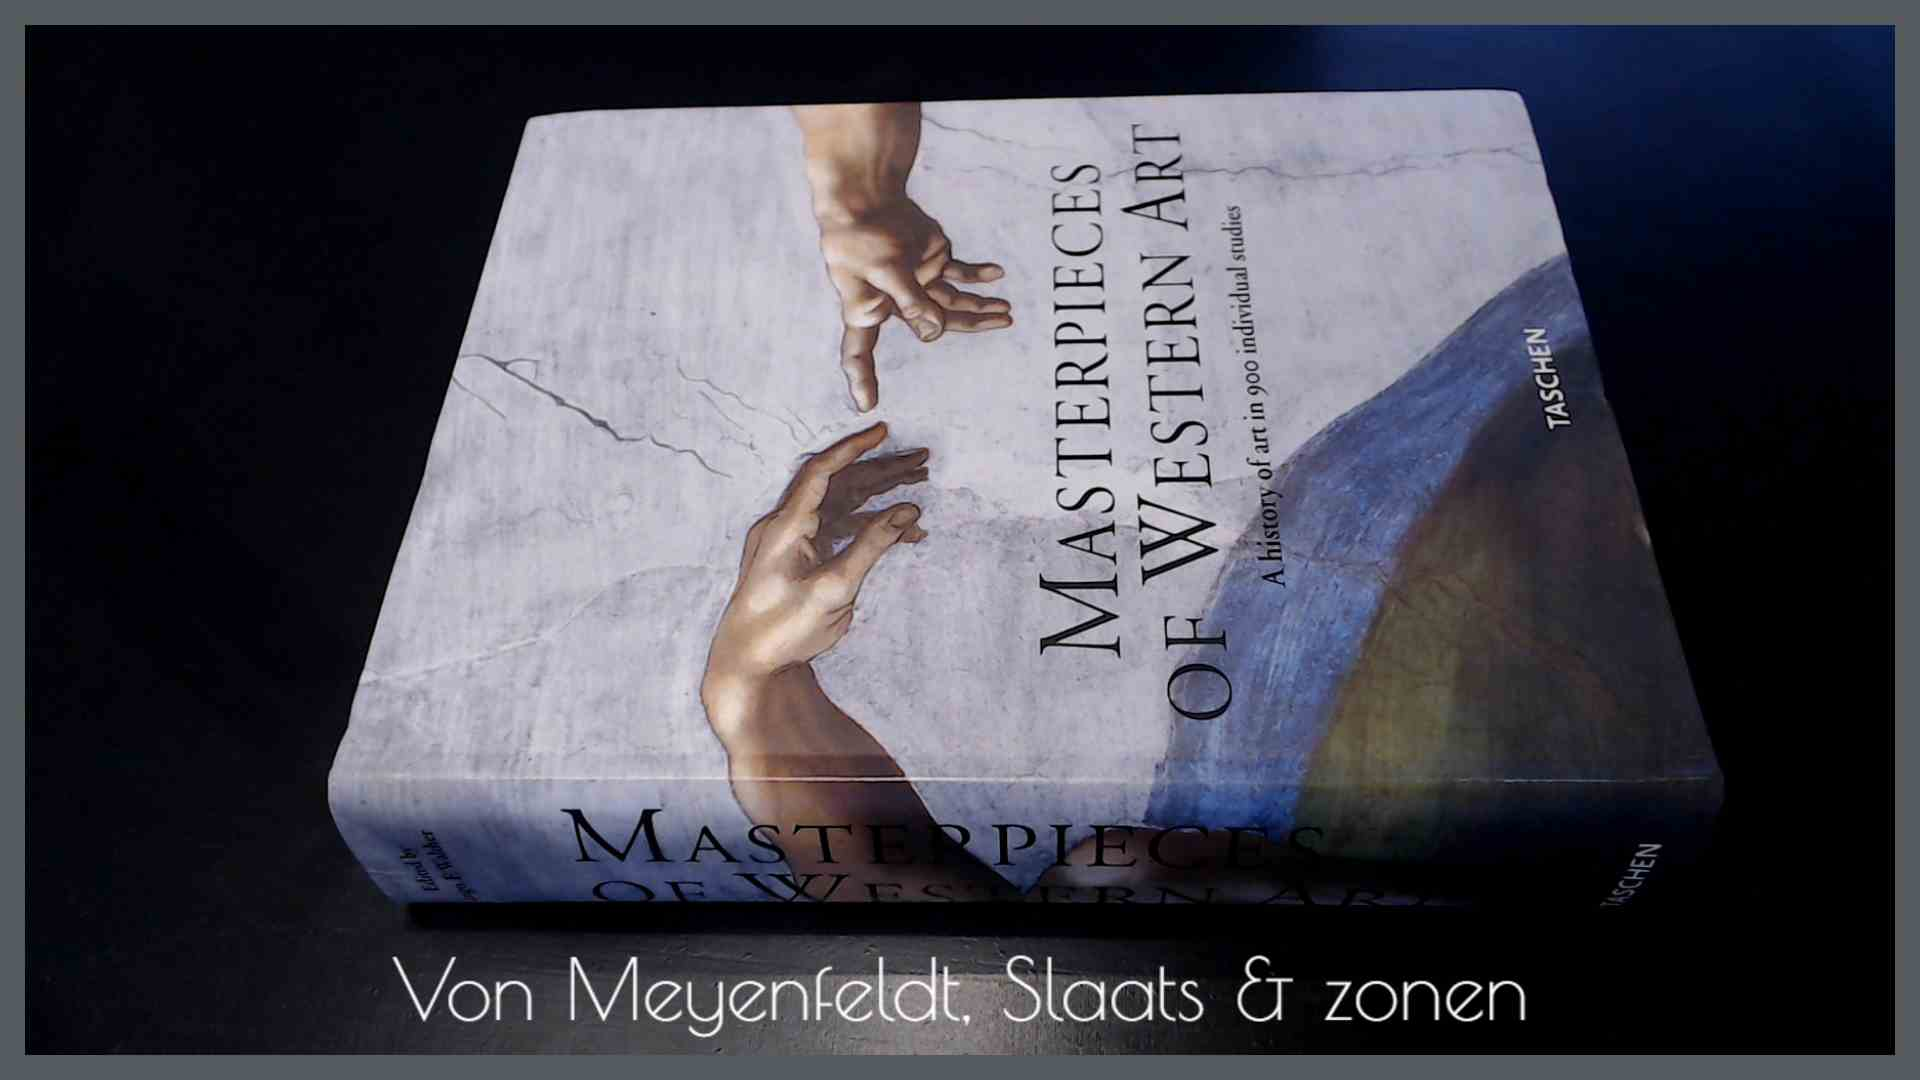 WALTHER, INGO F. - Masterpieces of Western art - Part 1 : From the Gothic to Neoclassicism / Part II : From the Romantic age to the present day - Part II : from the Romantic age to the present day